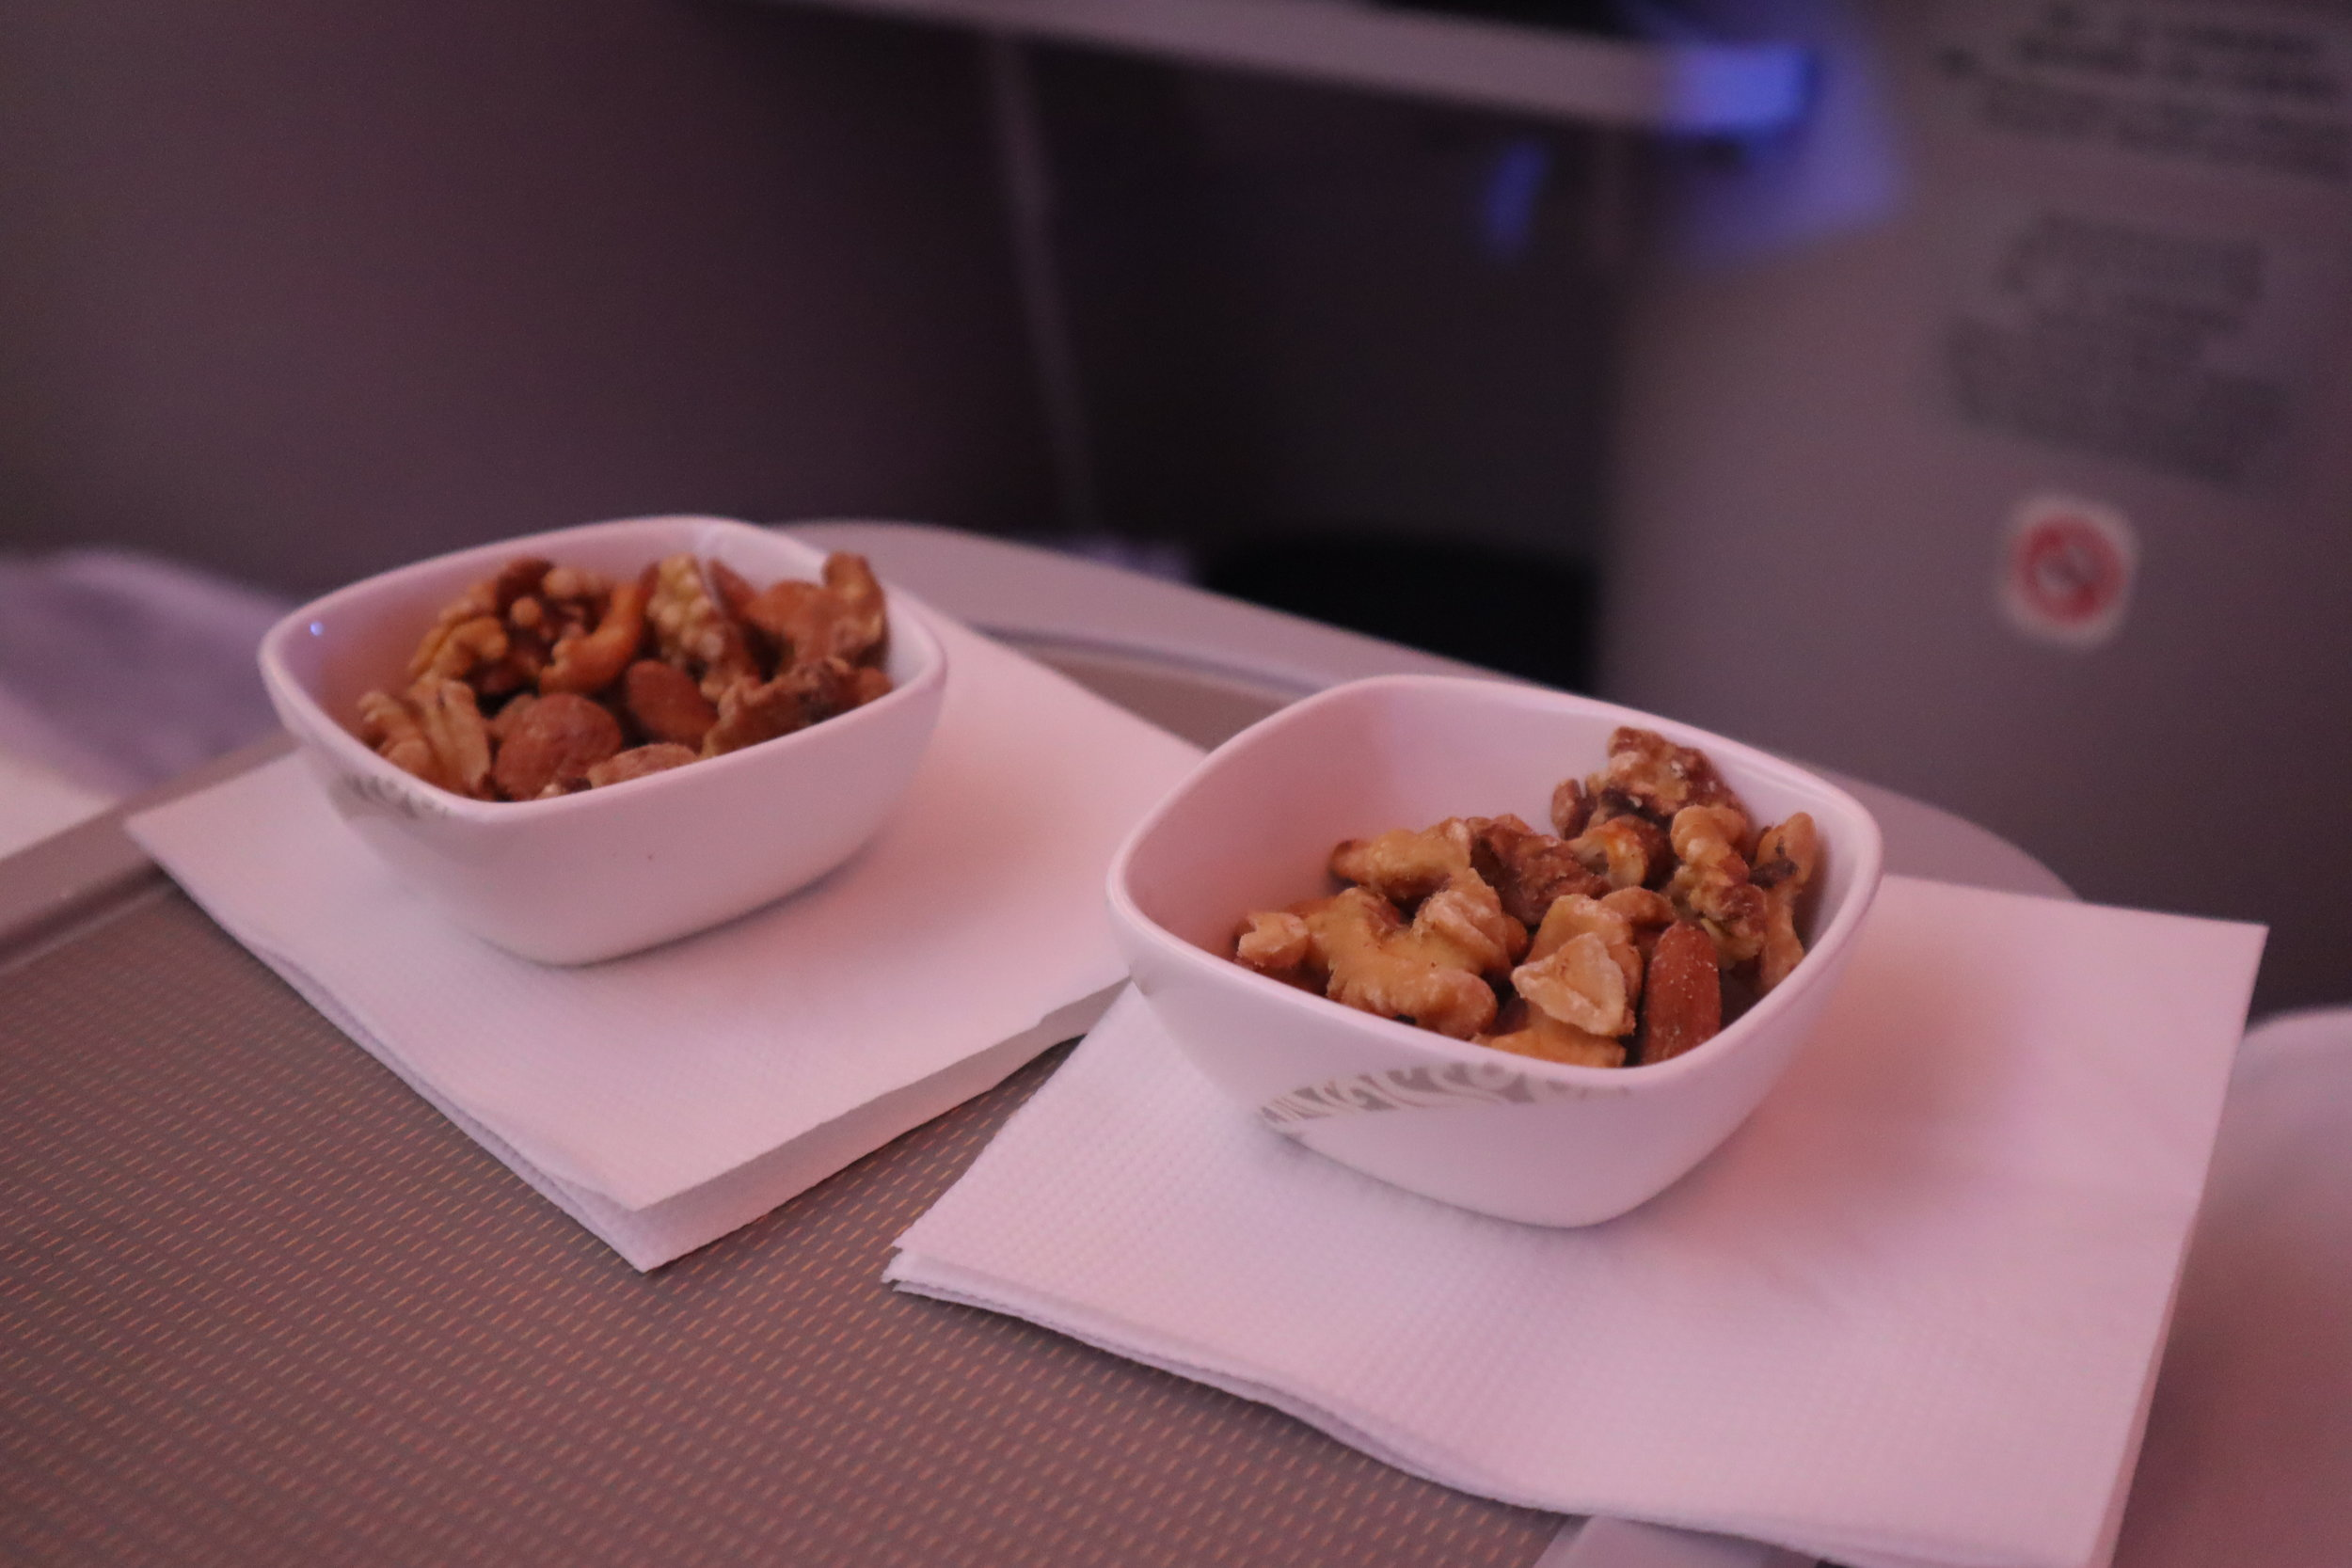 Air China business class – Mixed nuts